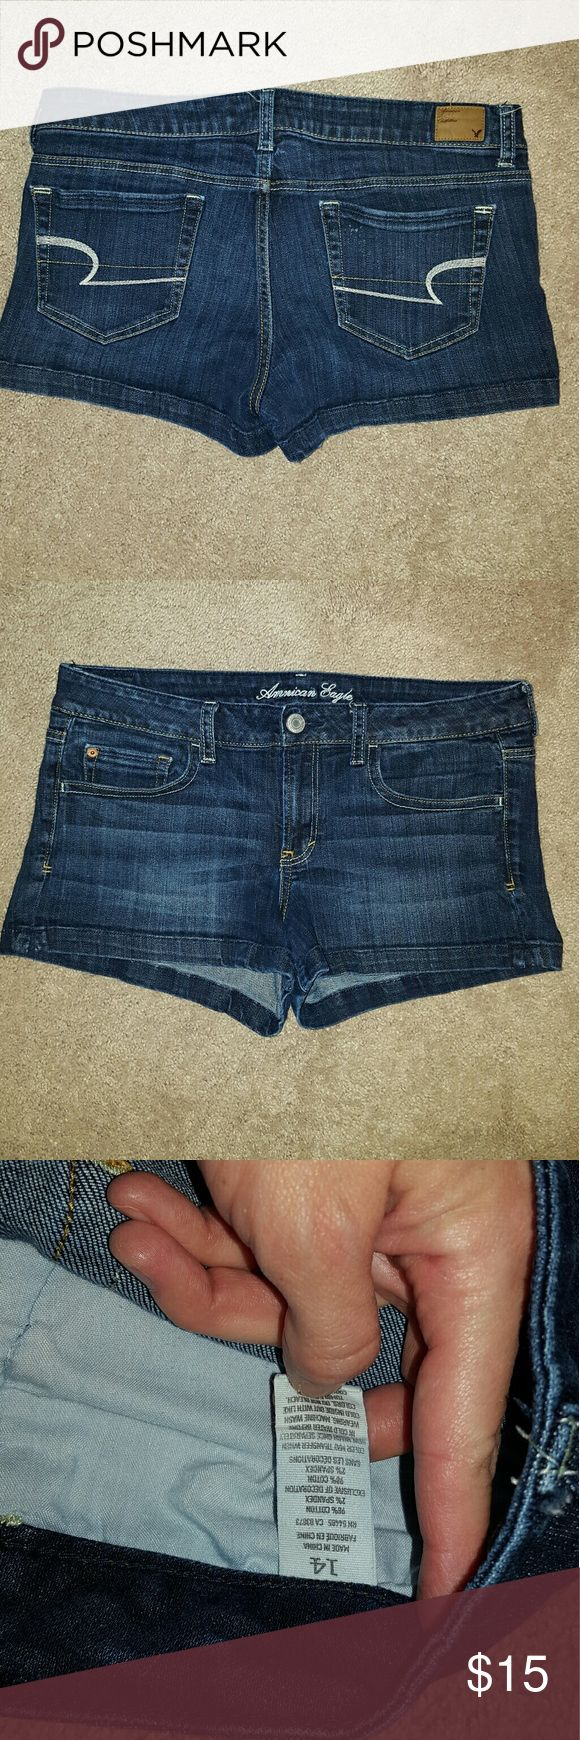 American Eagle stretch shorts sz14 Hardly worn American Eagle Outfitters stretch shorts in a dark wash, size 14. Great pair of shorts for the summer! American Eagle Outfitters Shorts Jean Shorts